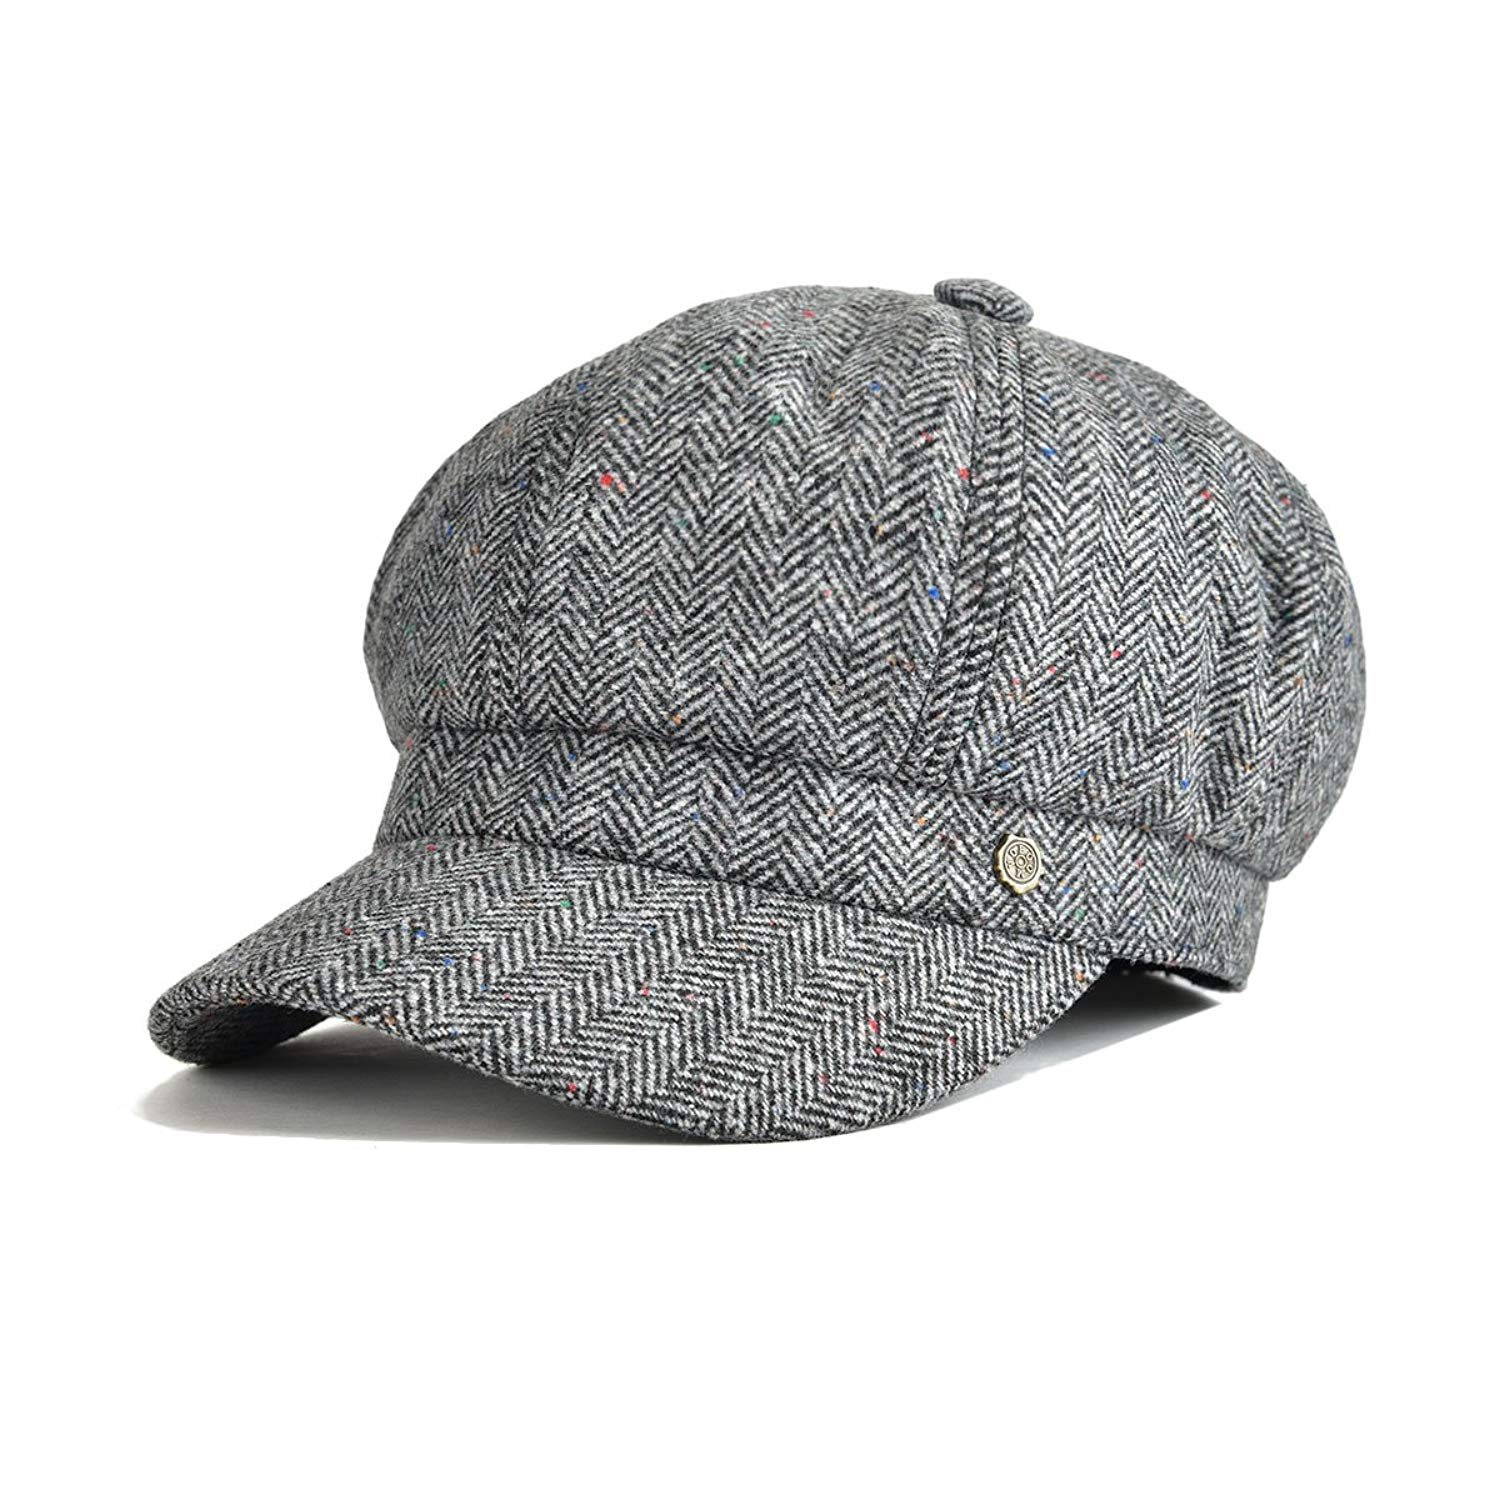 597fbe051a7 Get Quotations · VOBOOM 8 Panel Wool Tweed Newsboy Gatsby Ivy Cap Golf  Cabbie Driving Hat Herringbone